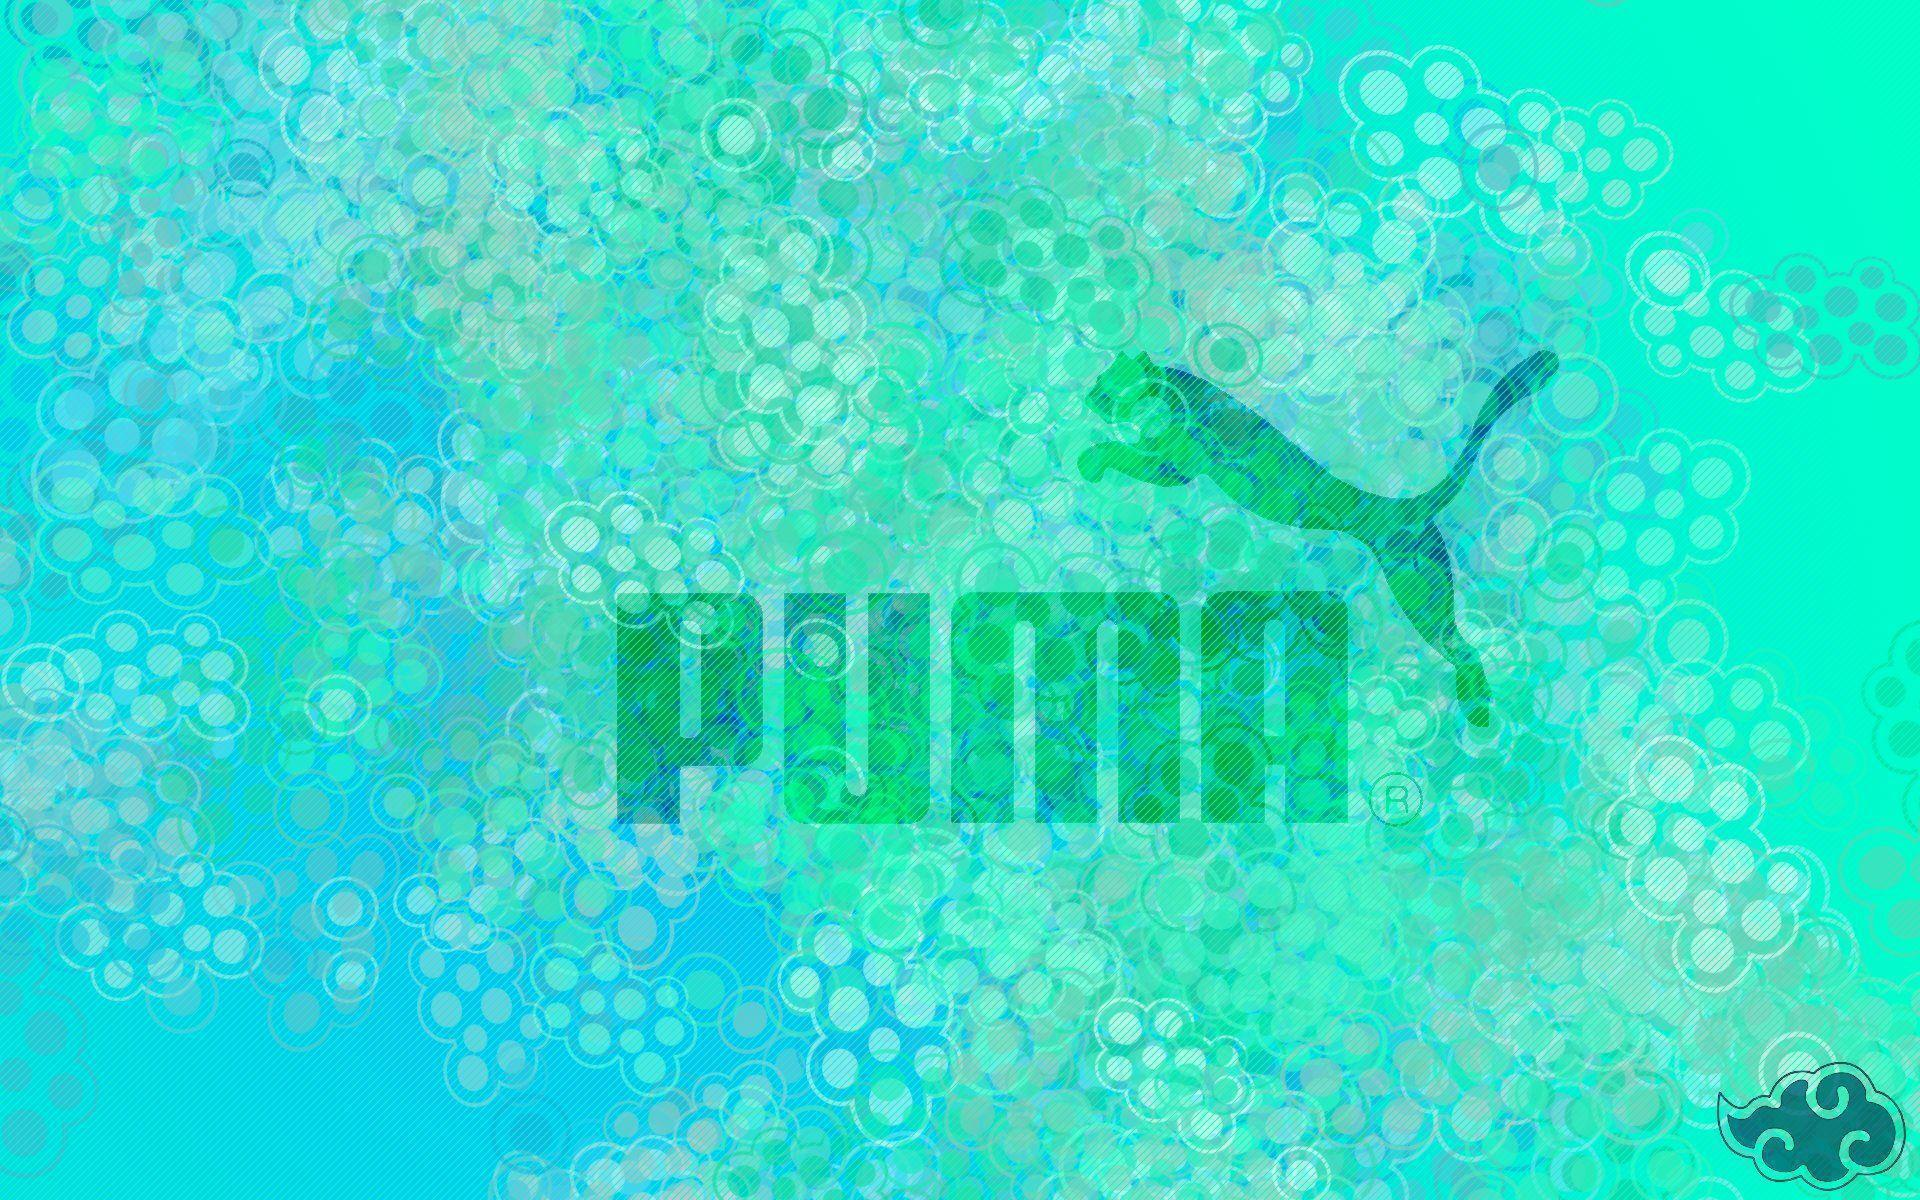 Puma Wallpaper by yopladas on DeviantArt